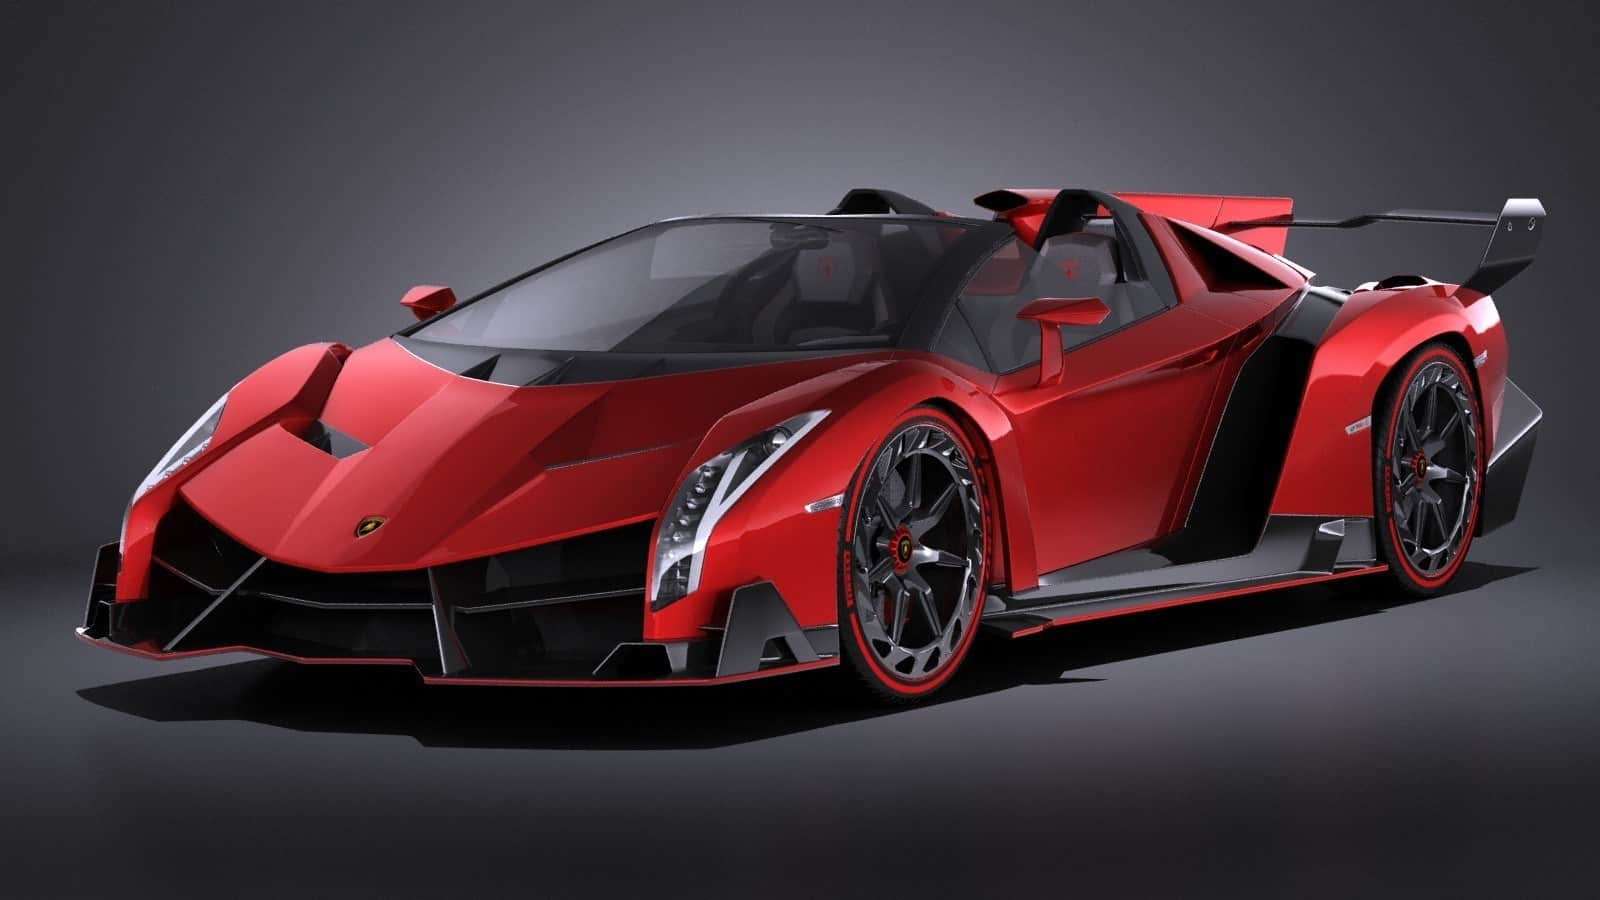 Ranking the most expensive sports cars in the world